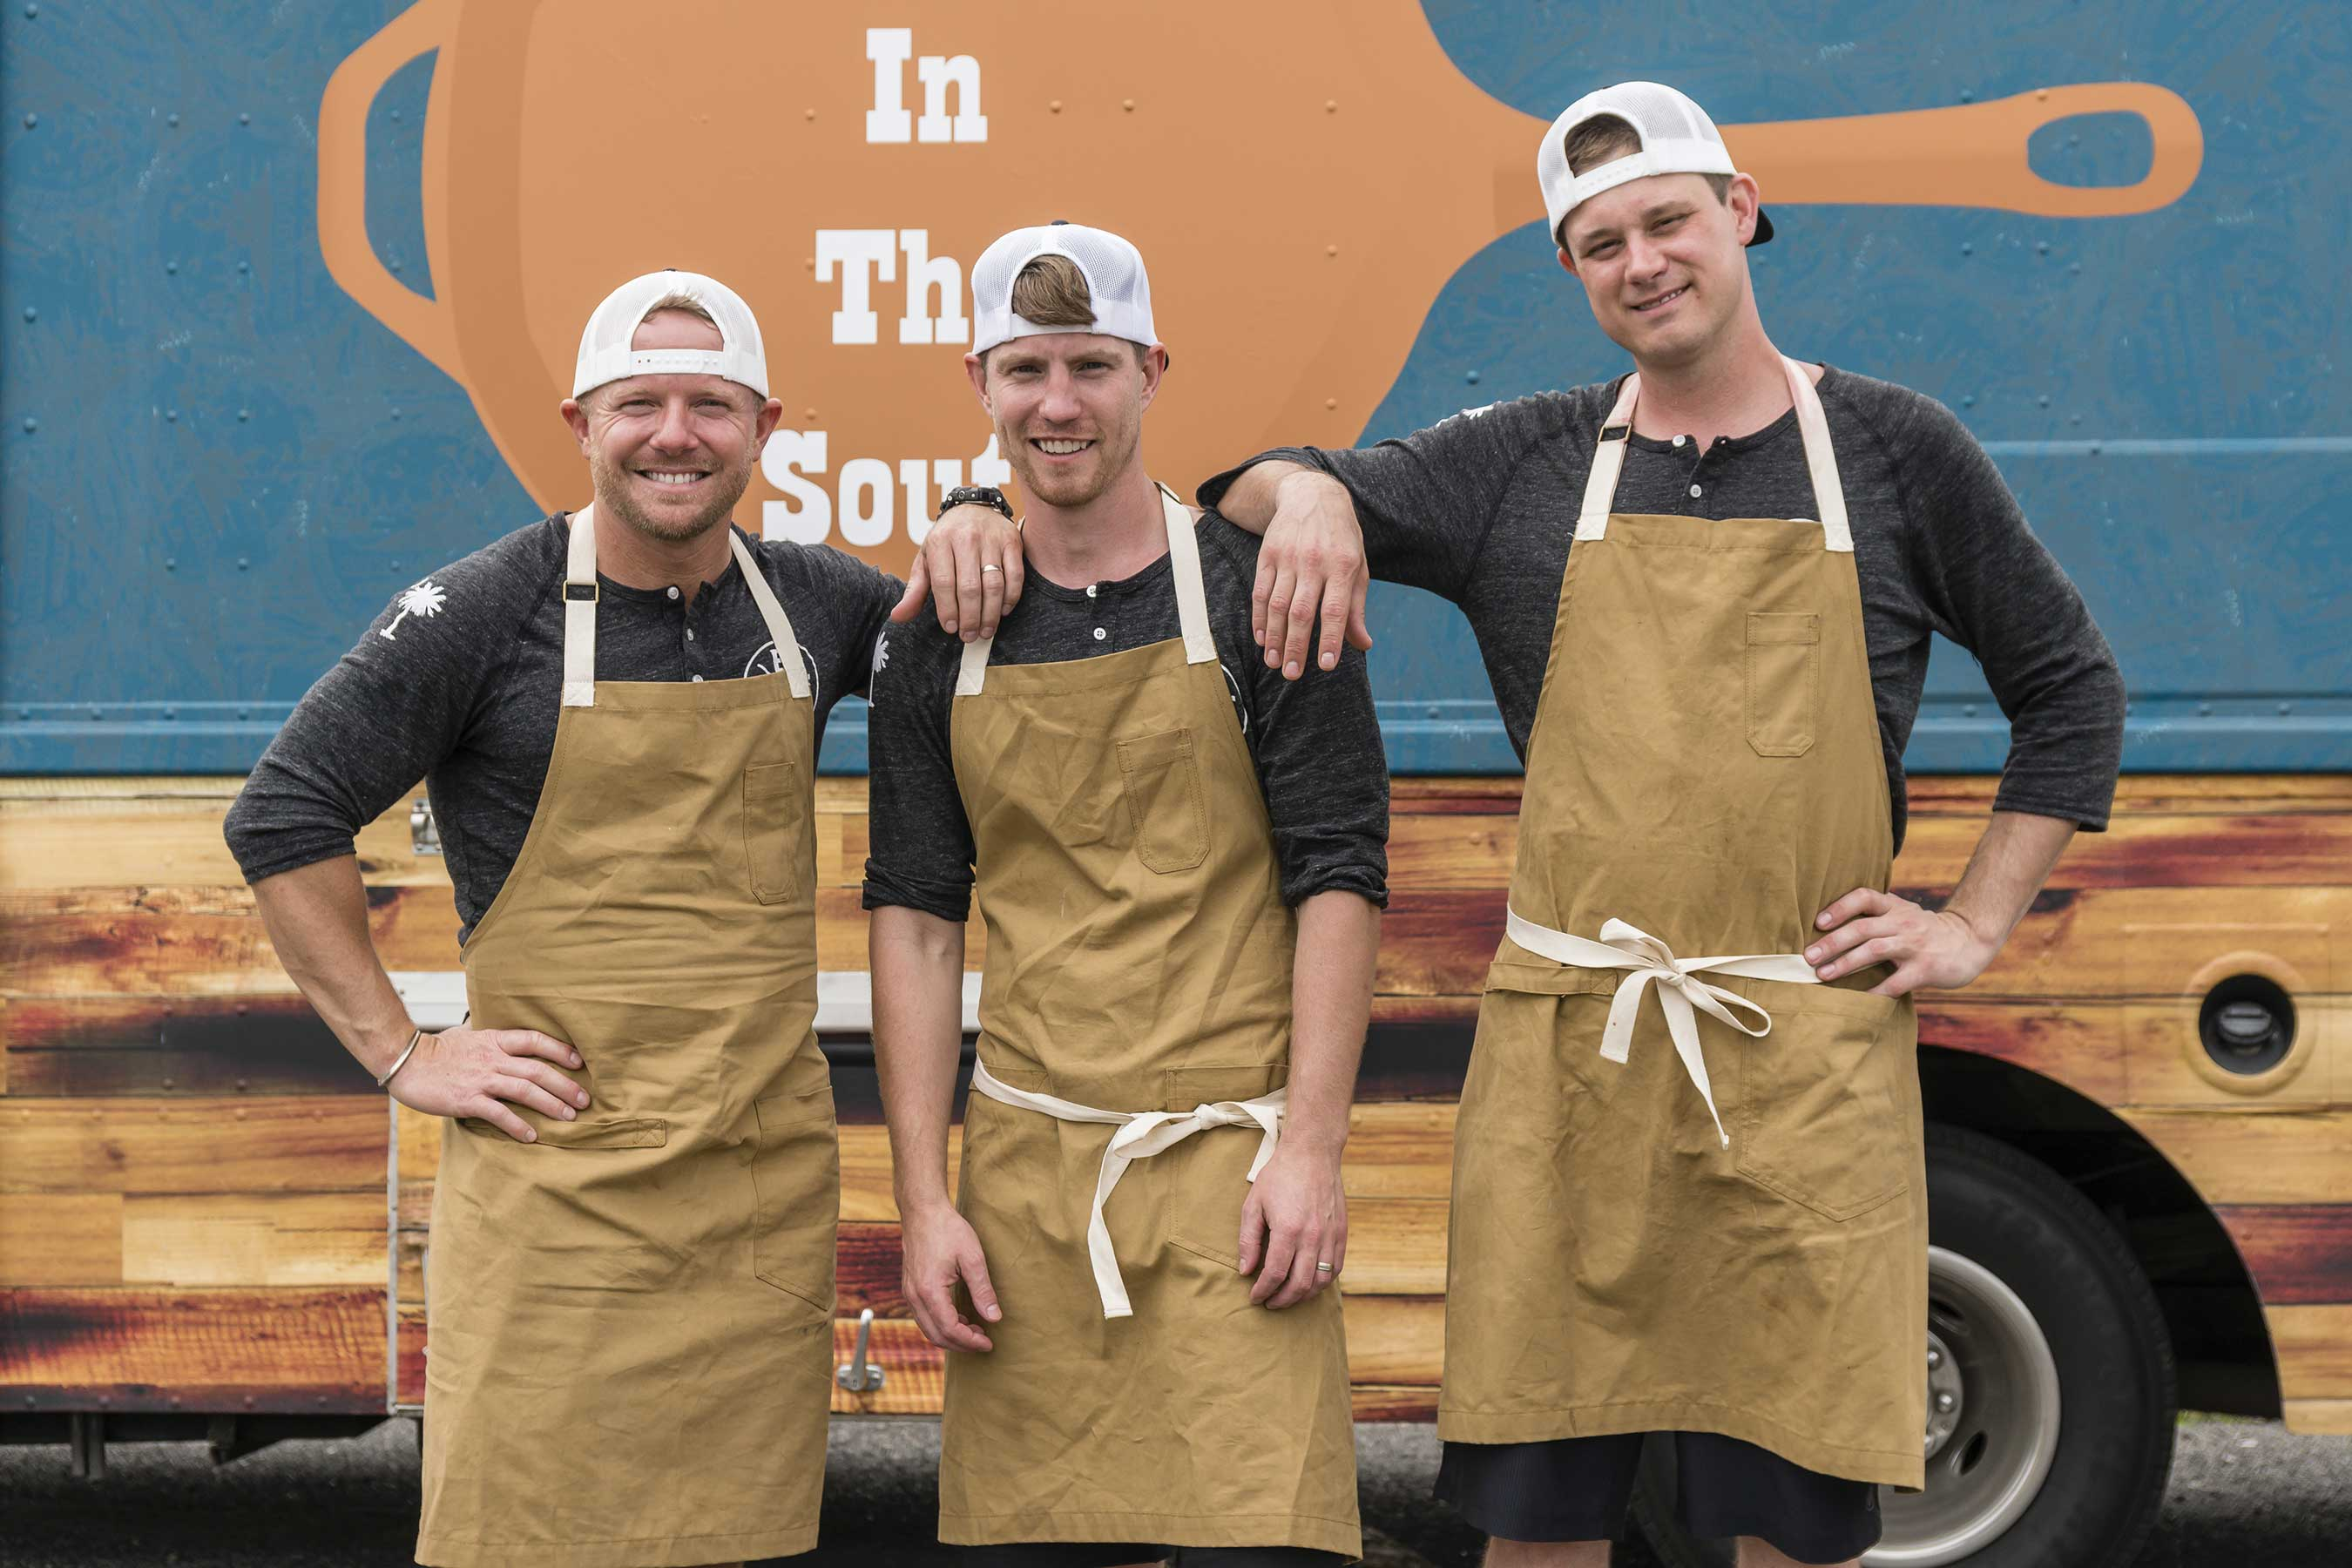 Team Braised In The South on Food Network's The Great Food Truck Race